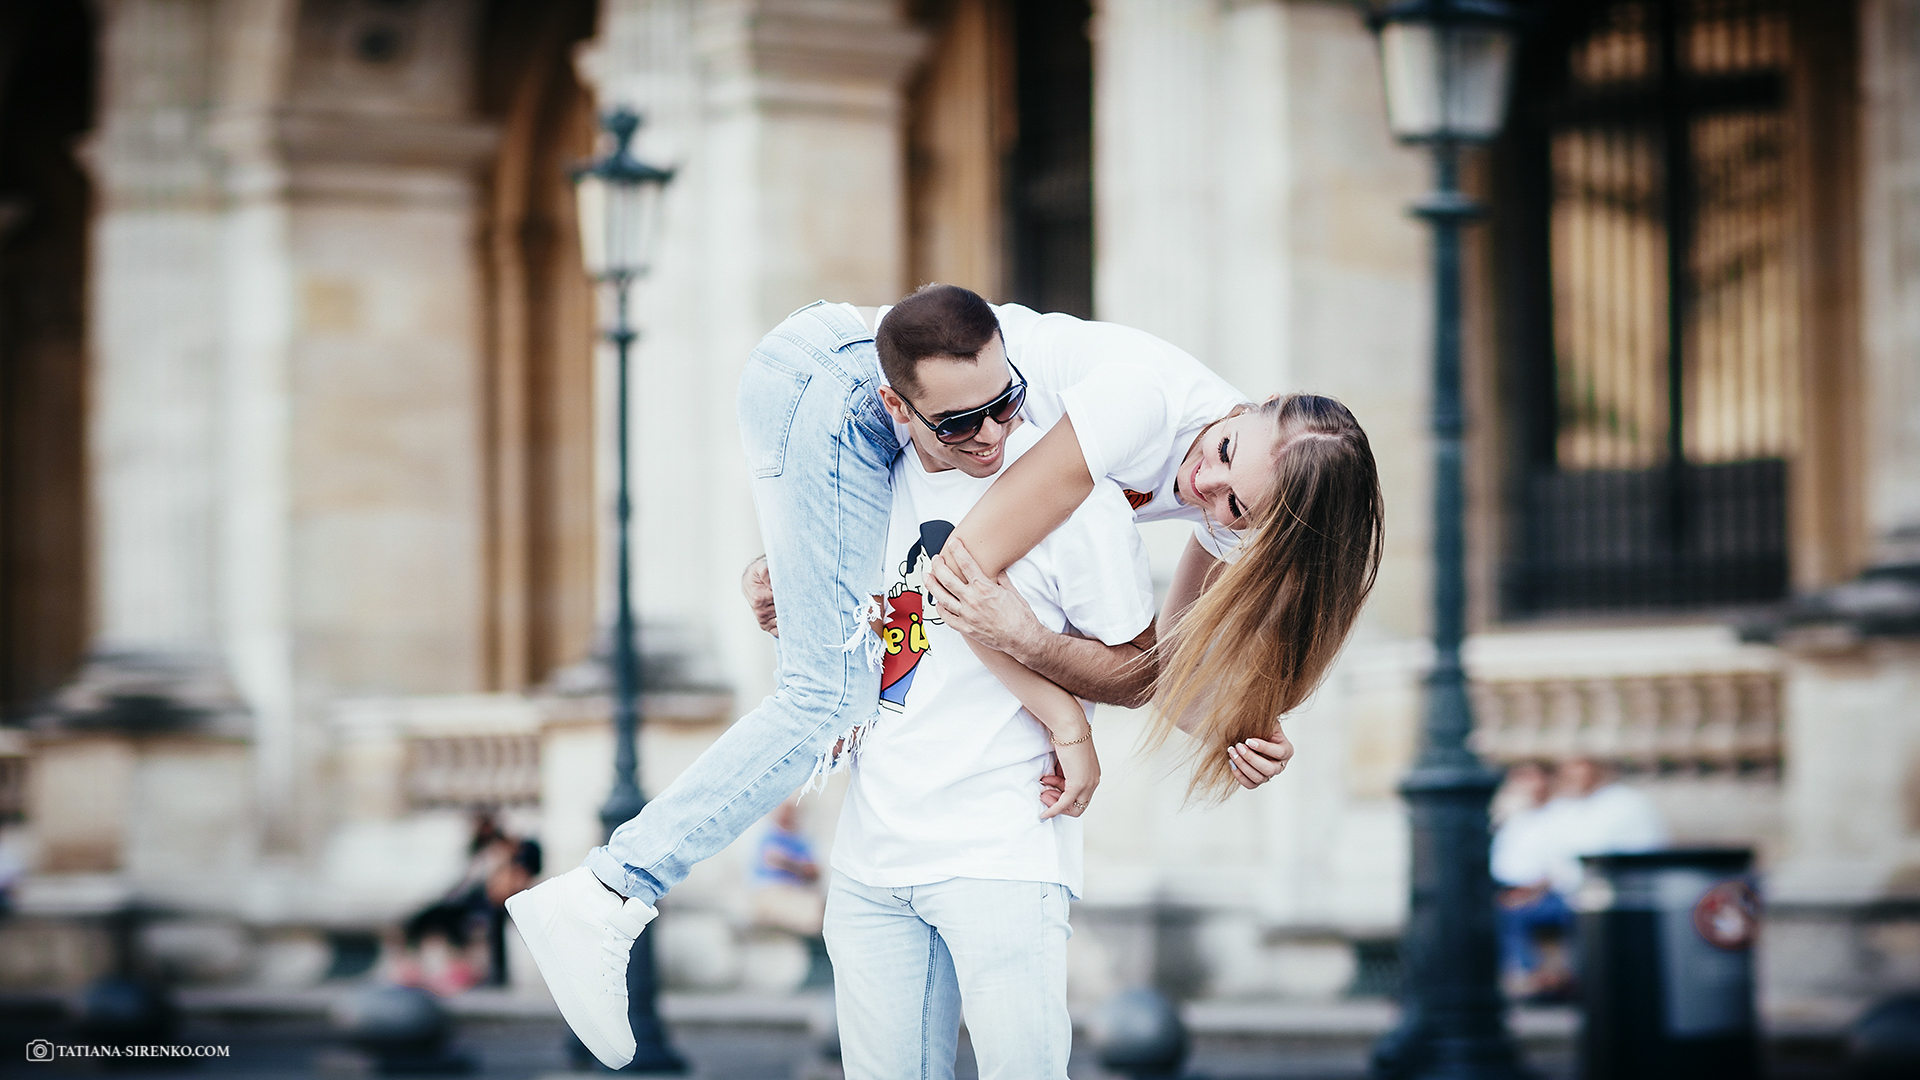 Taking pictures of lovers in Paris